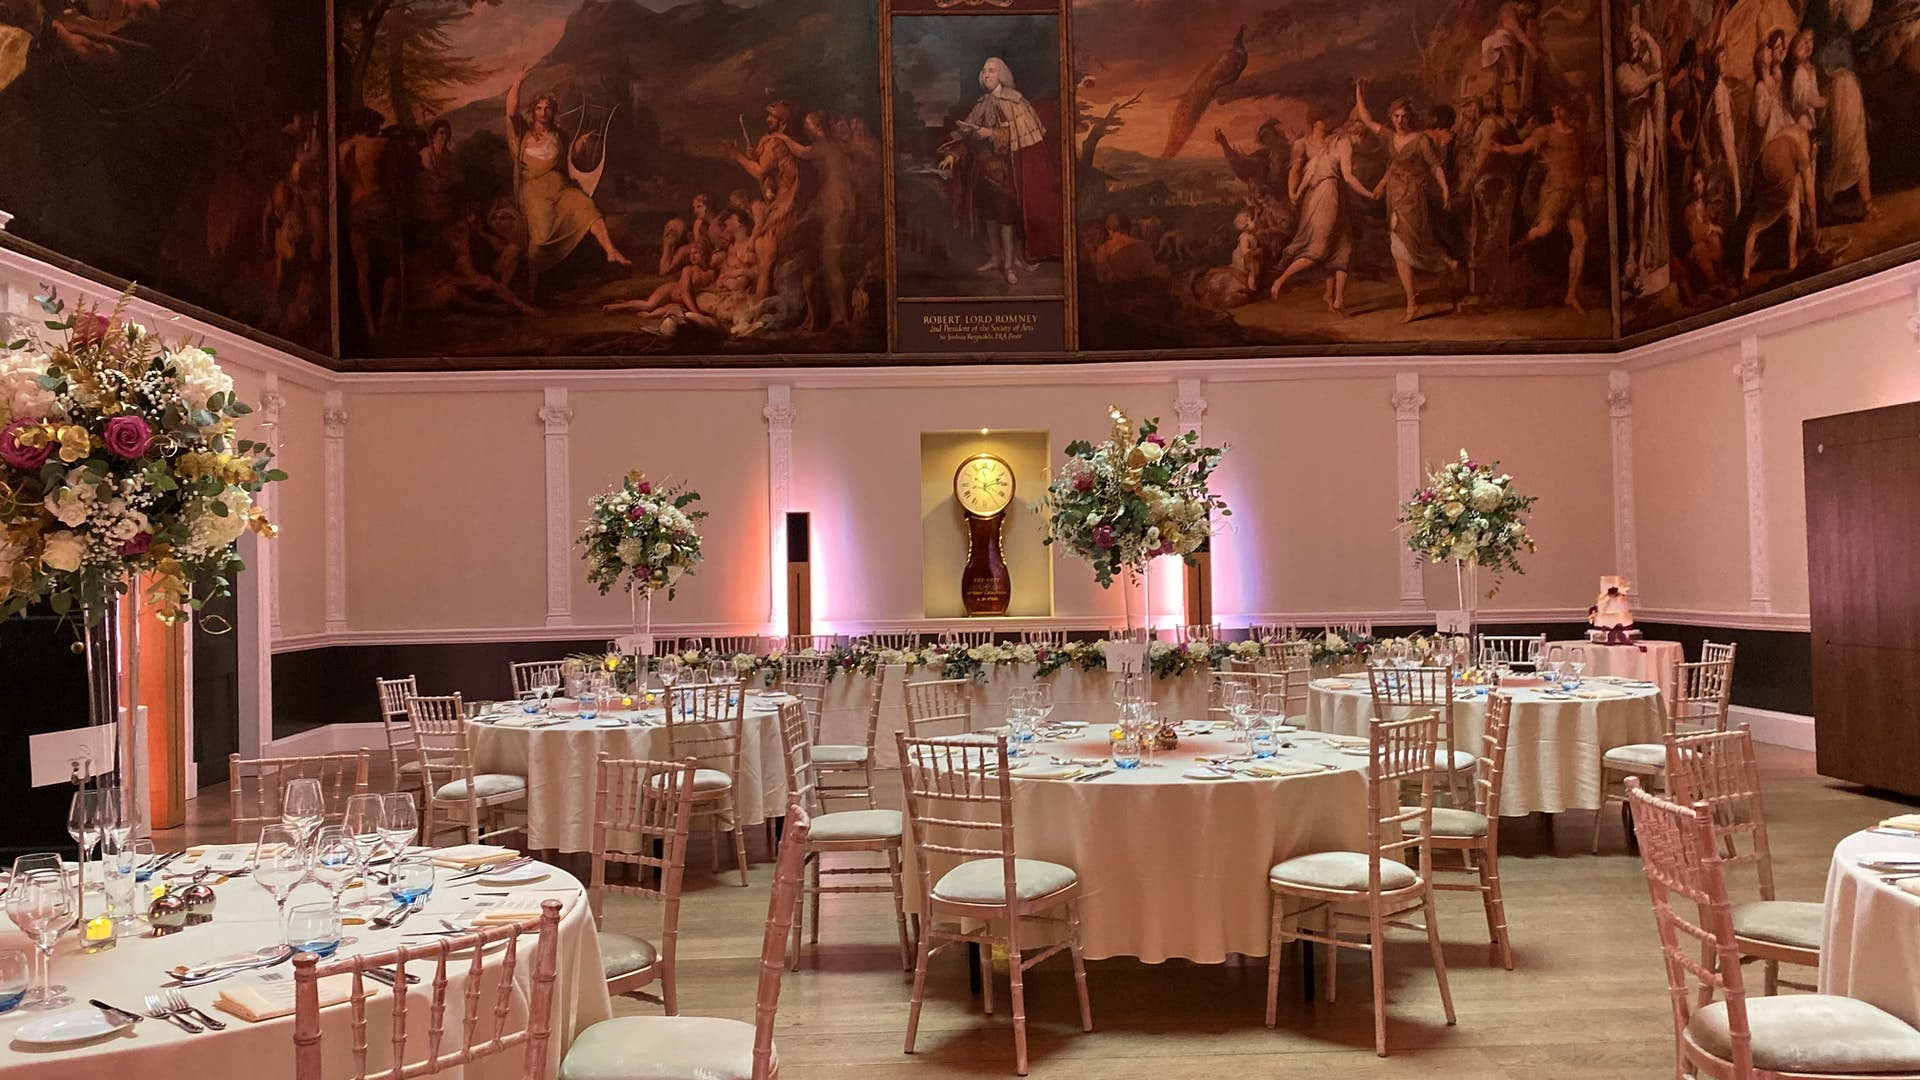 The Great Room dining set up